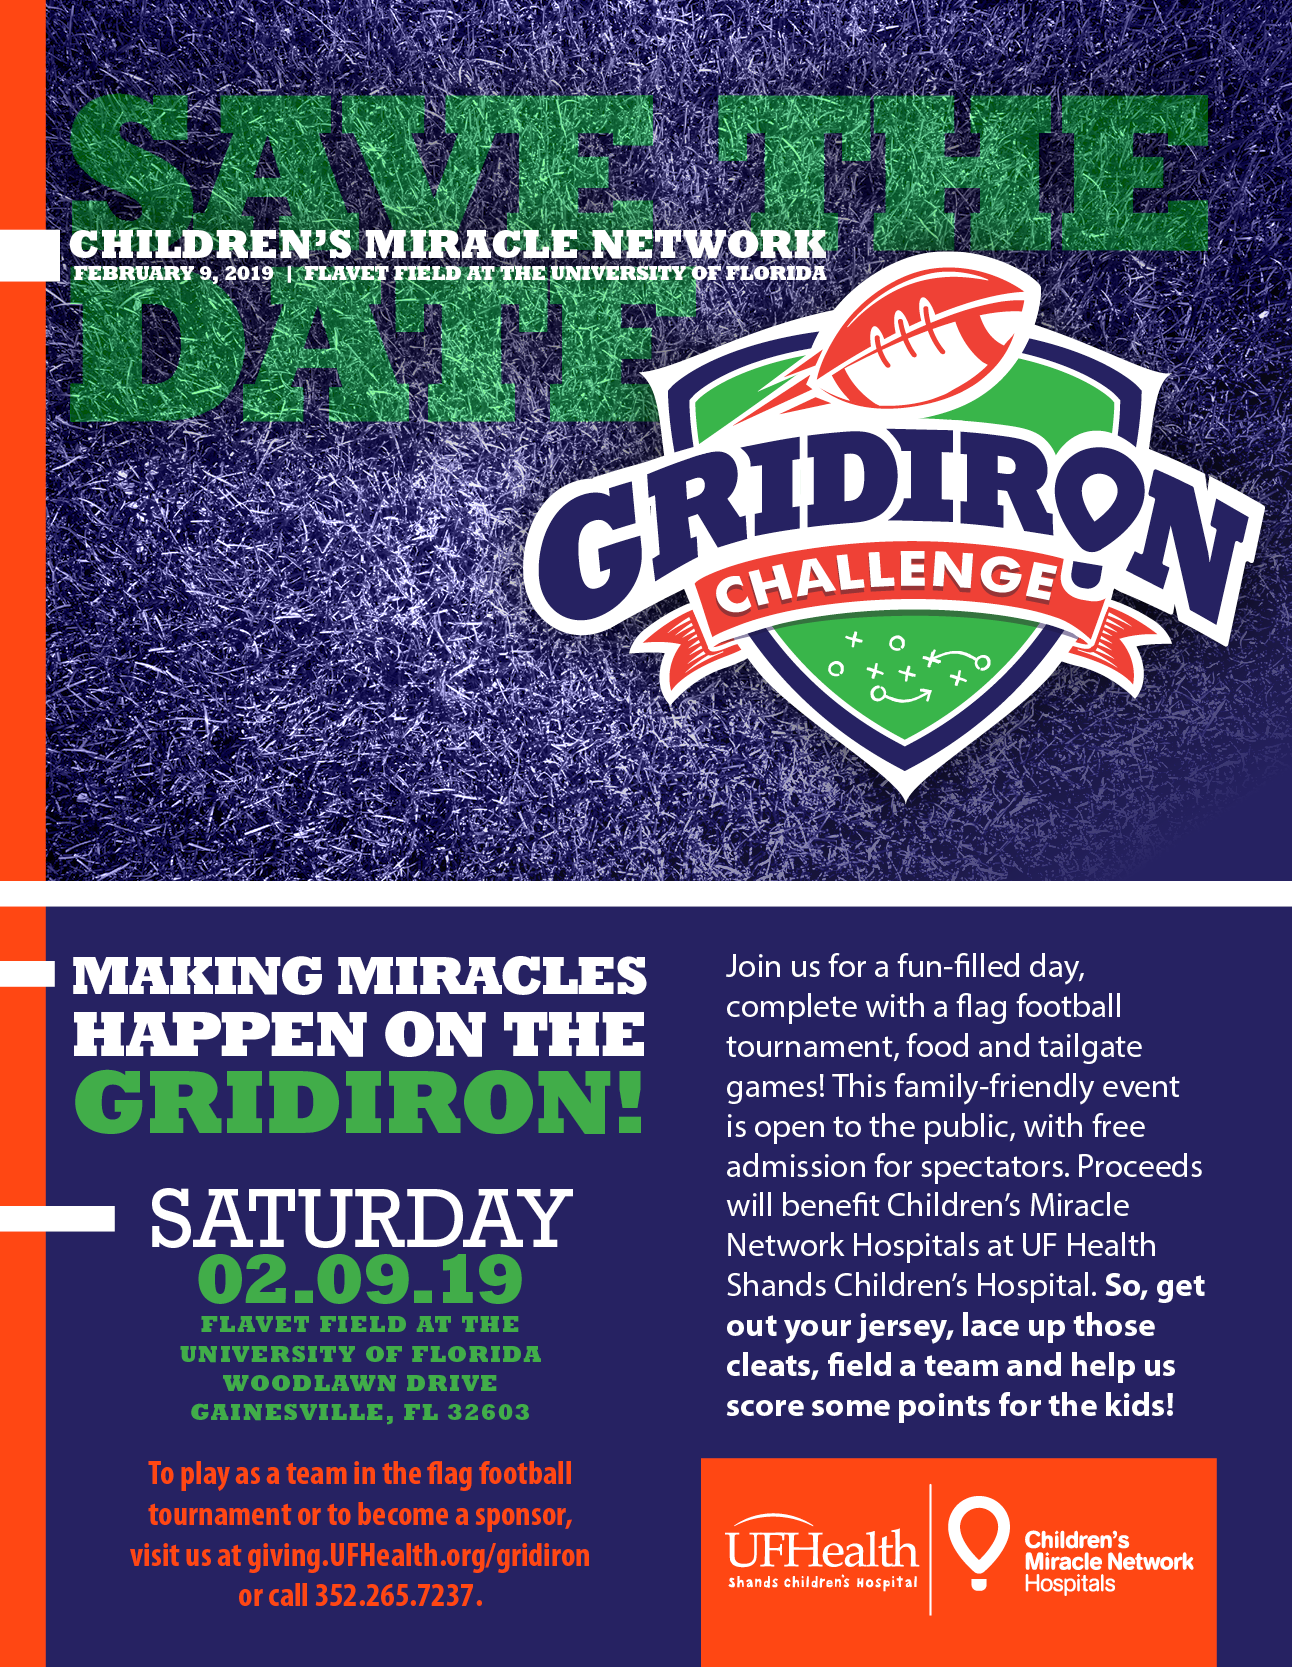 Save the Date for UF Health Gridiron Challenge on February 9, 2019